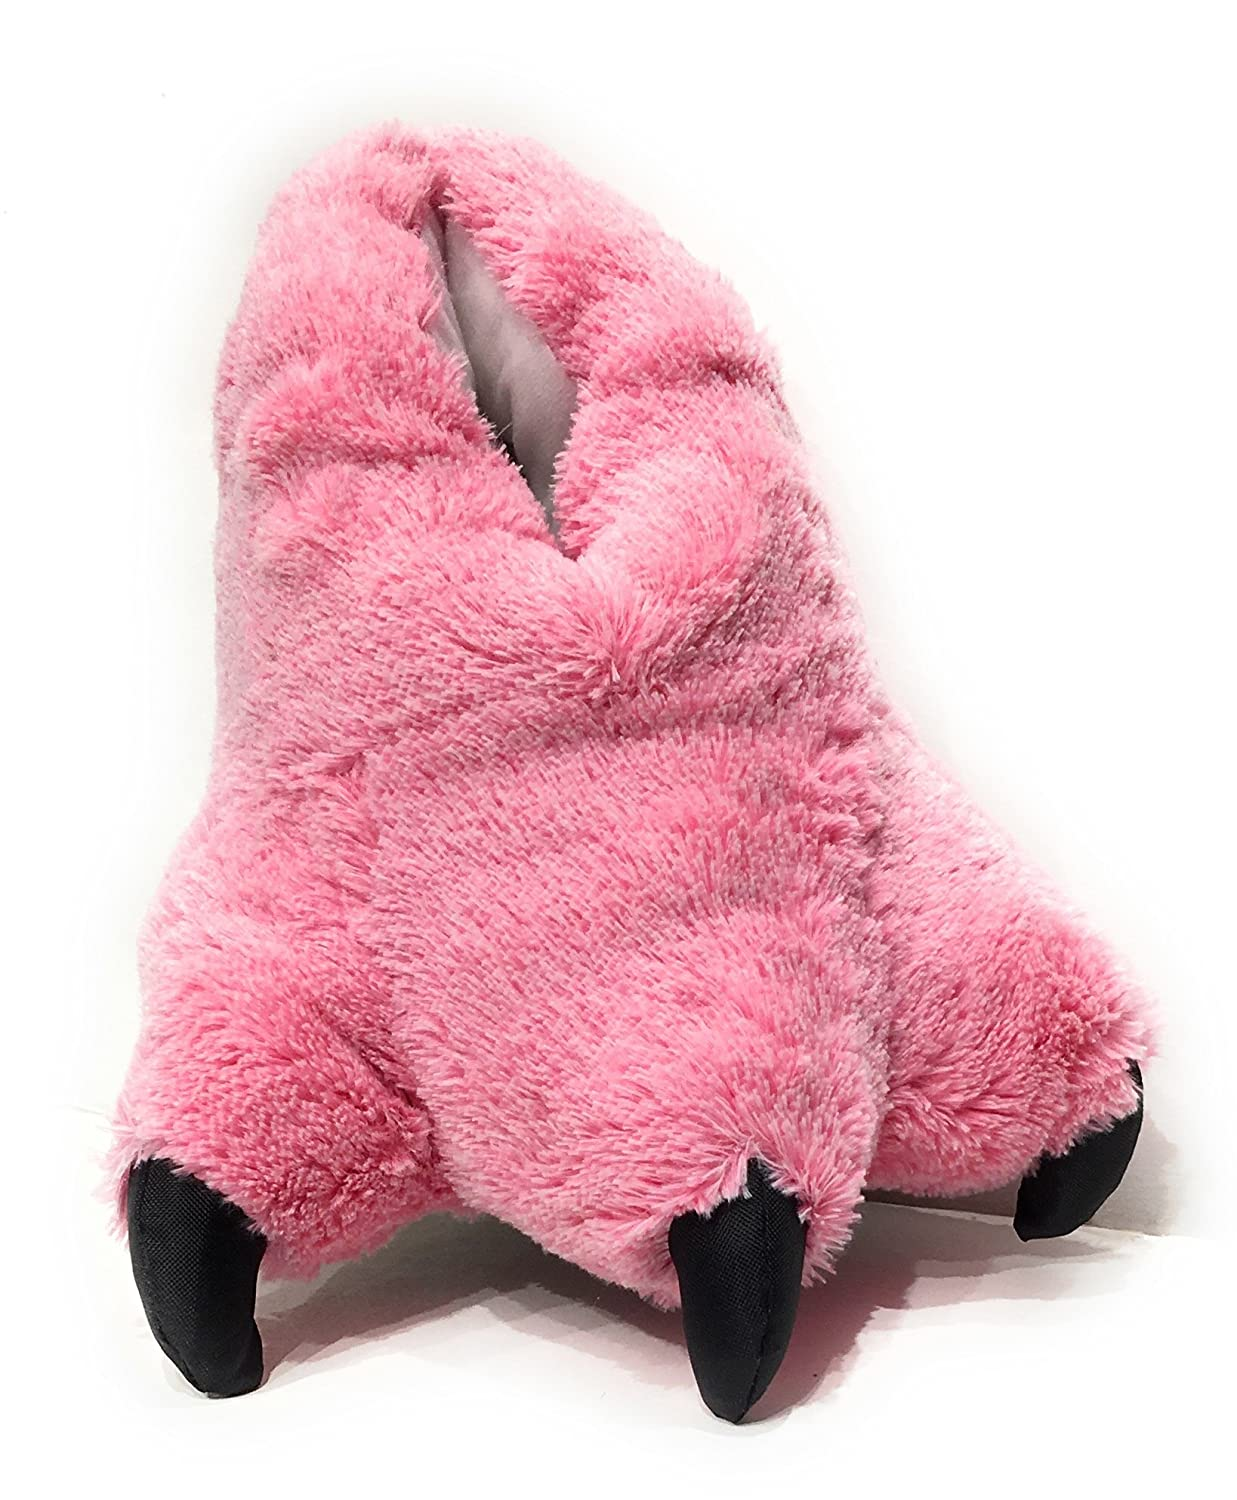 Pink Flamingo Sundial Wild Ones Furry Animal Claw Slippers for Toddlers, Kids and Adults